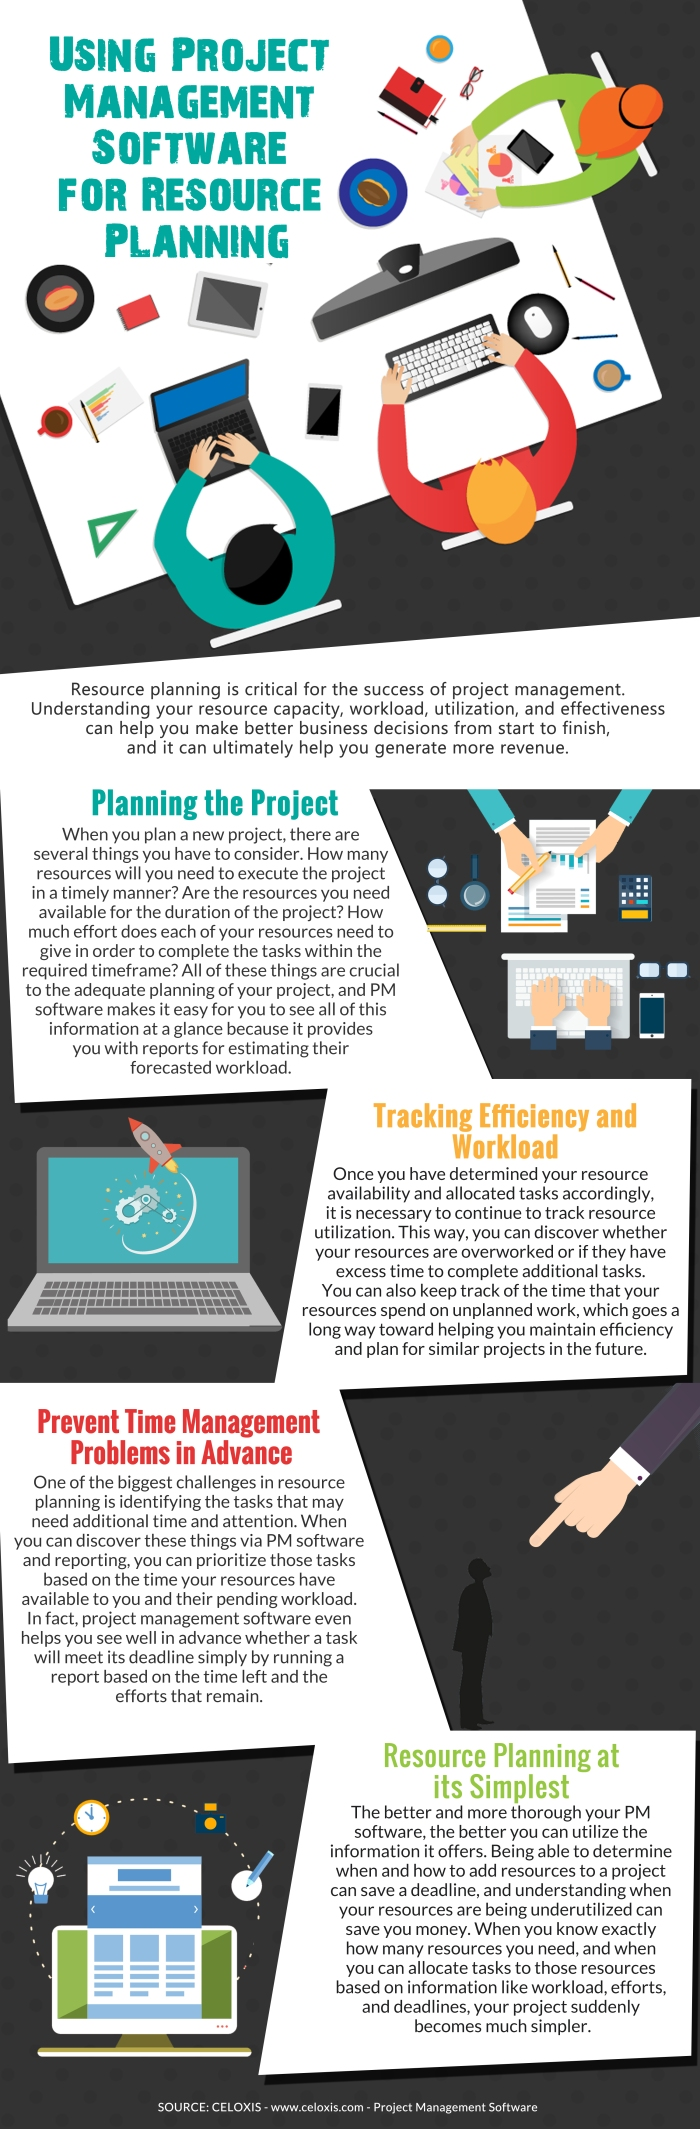 INFOGRAPHIC: Using Project Management Software for Resource Planning